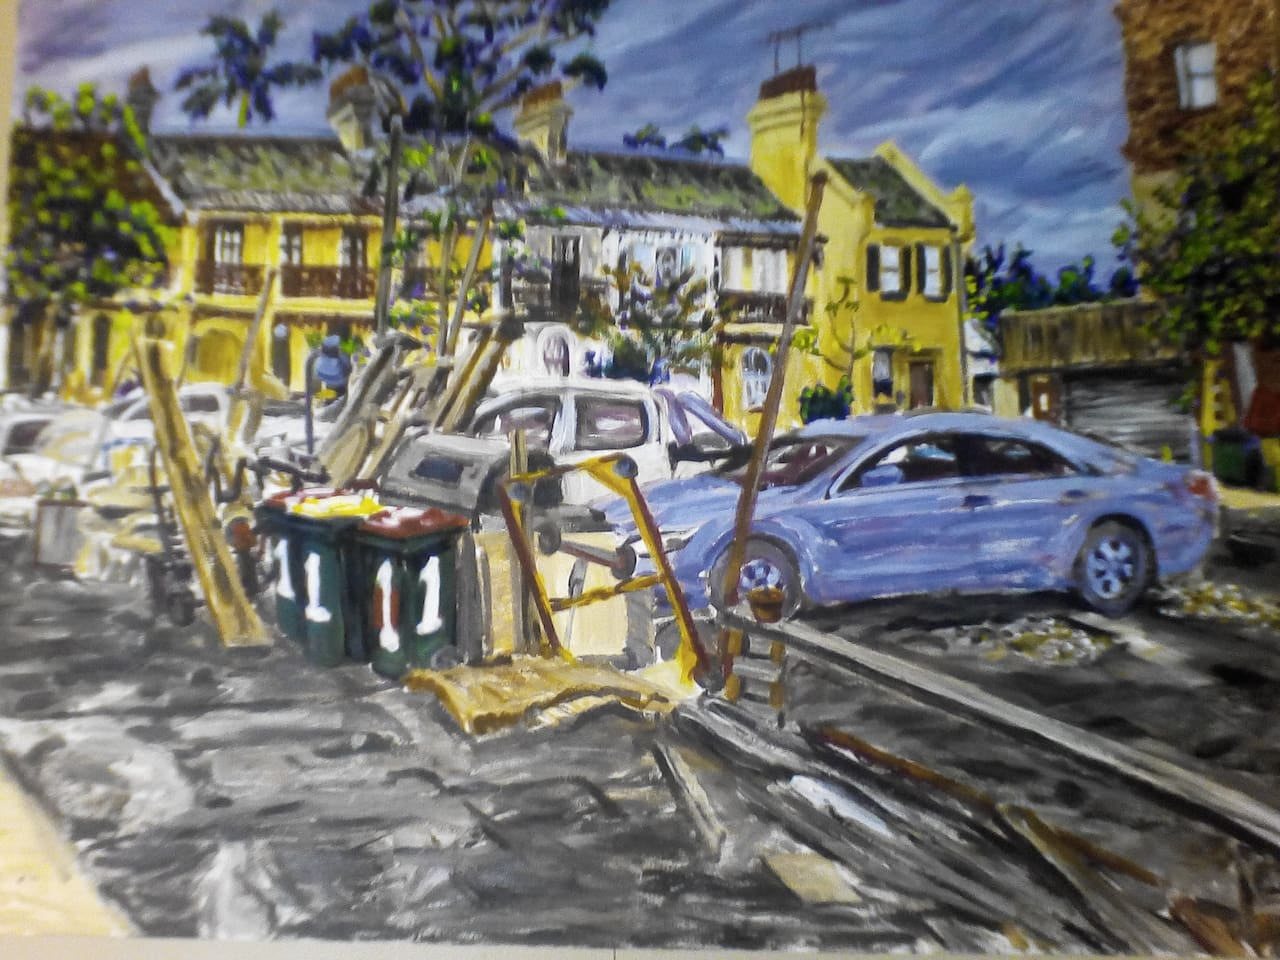 Junkyard Studio John O'Driscoll 2016  (Oil on Canvas)